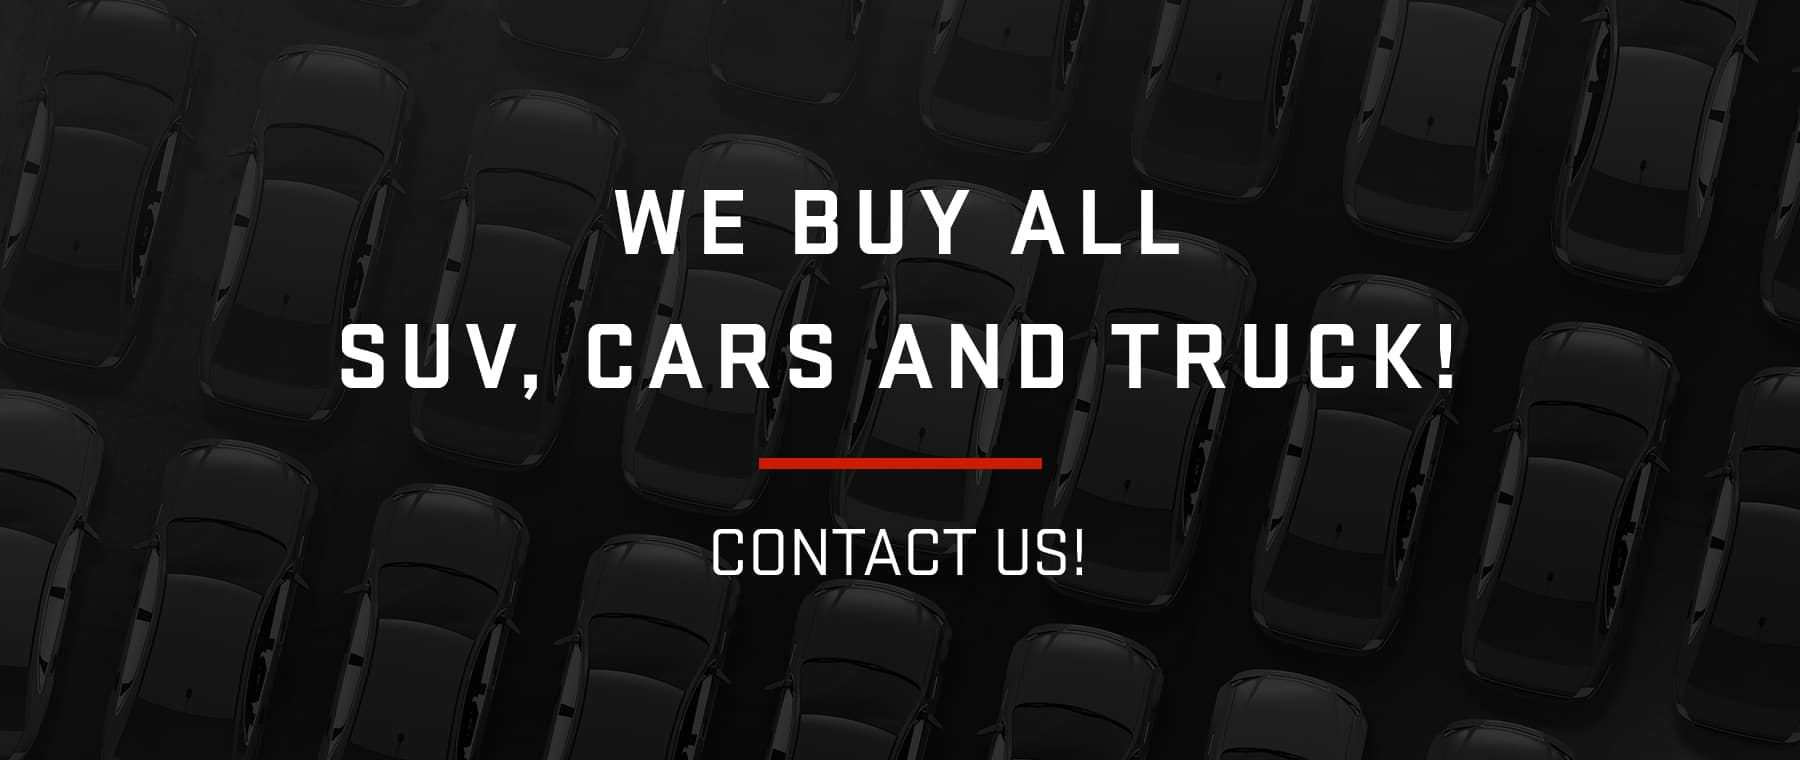 WE BUY ALL SUV, CARS and TRUCK!